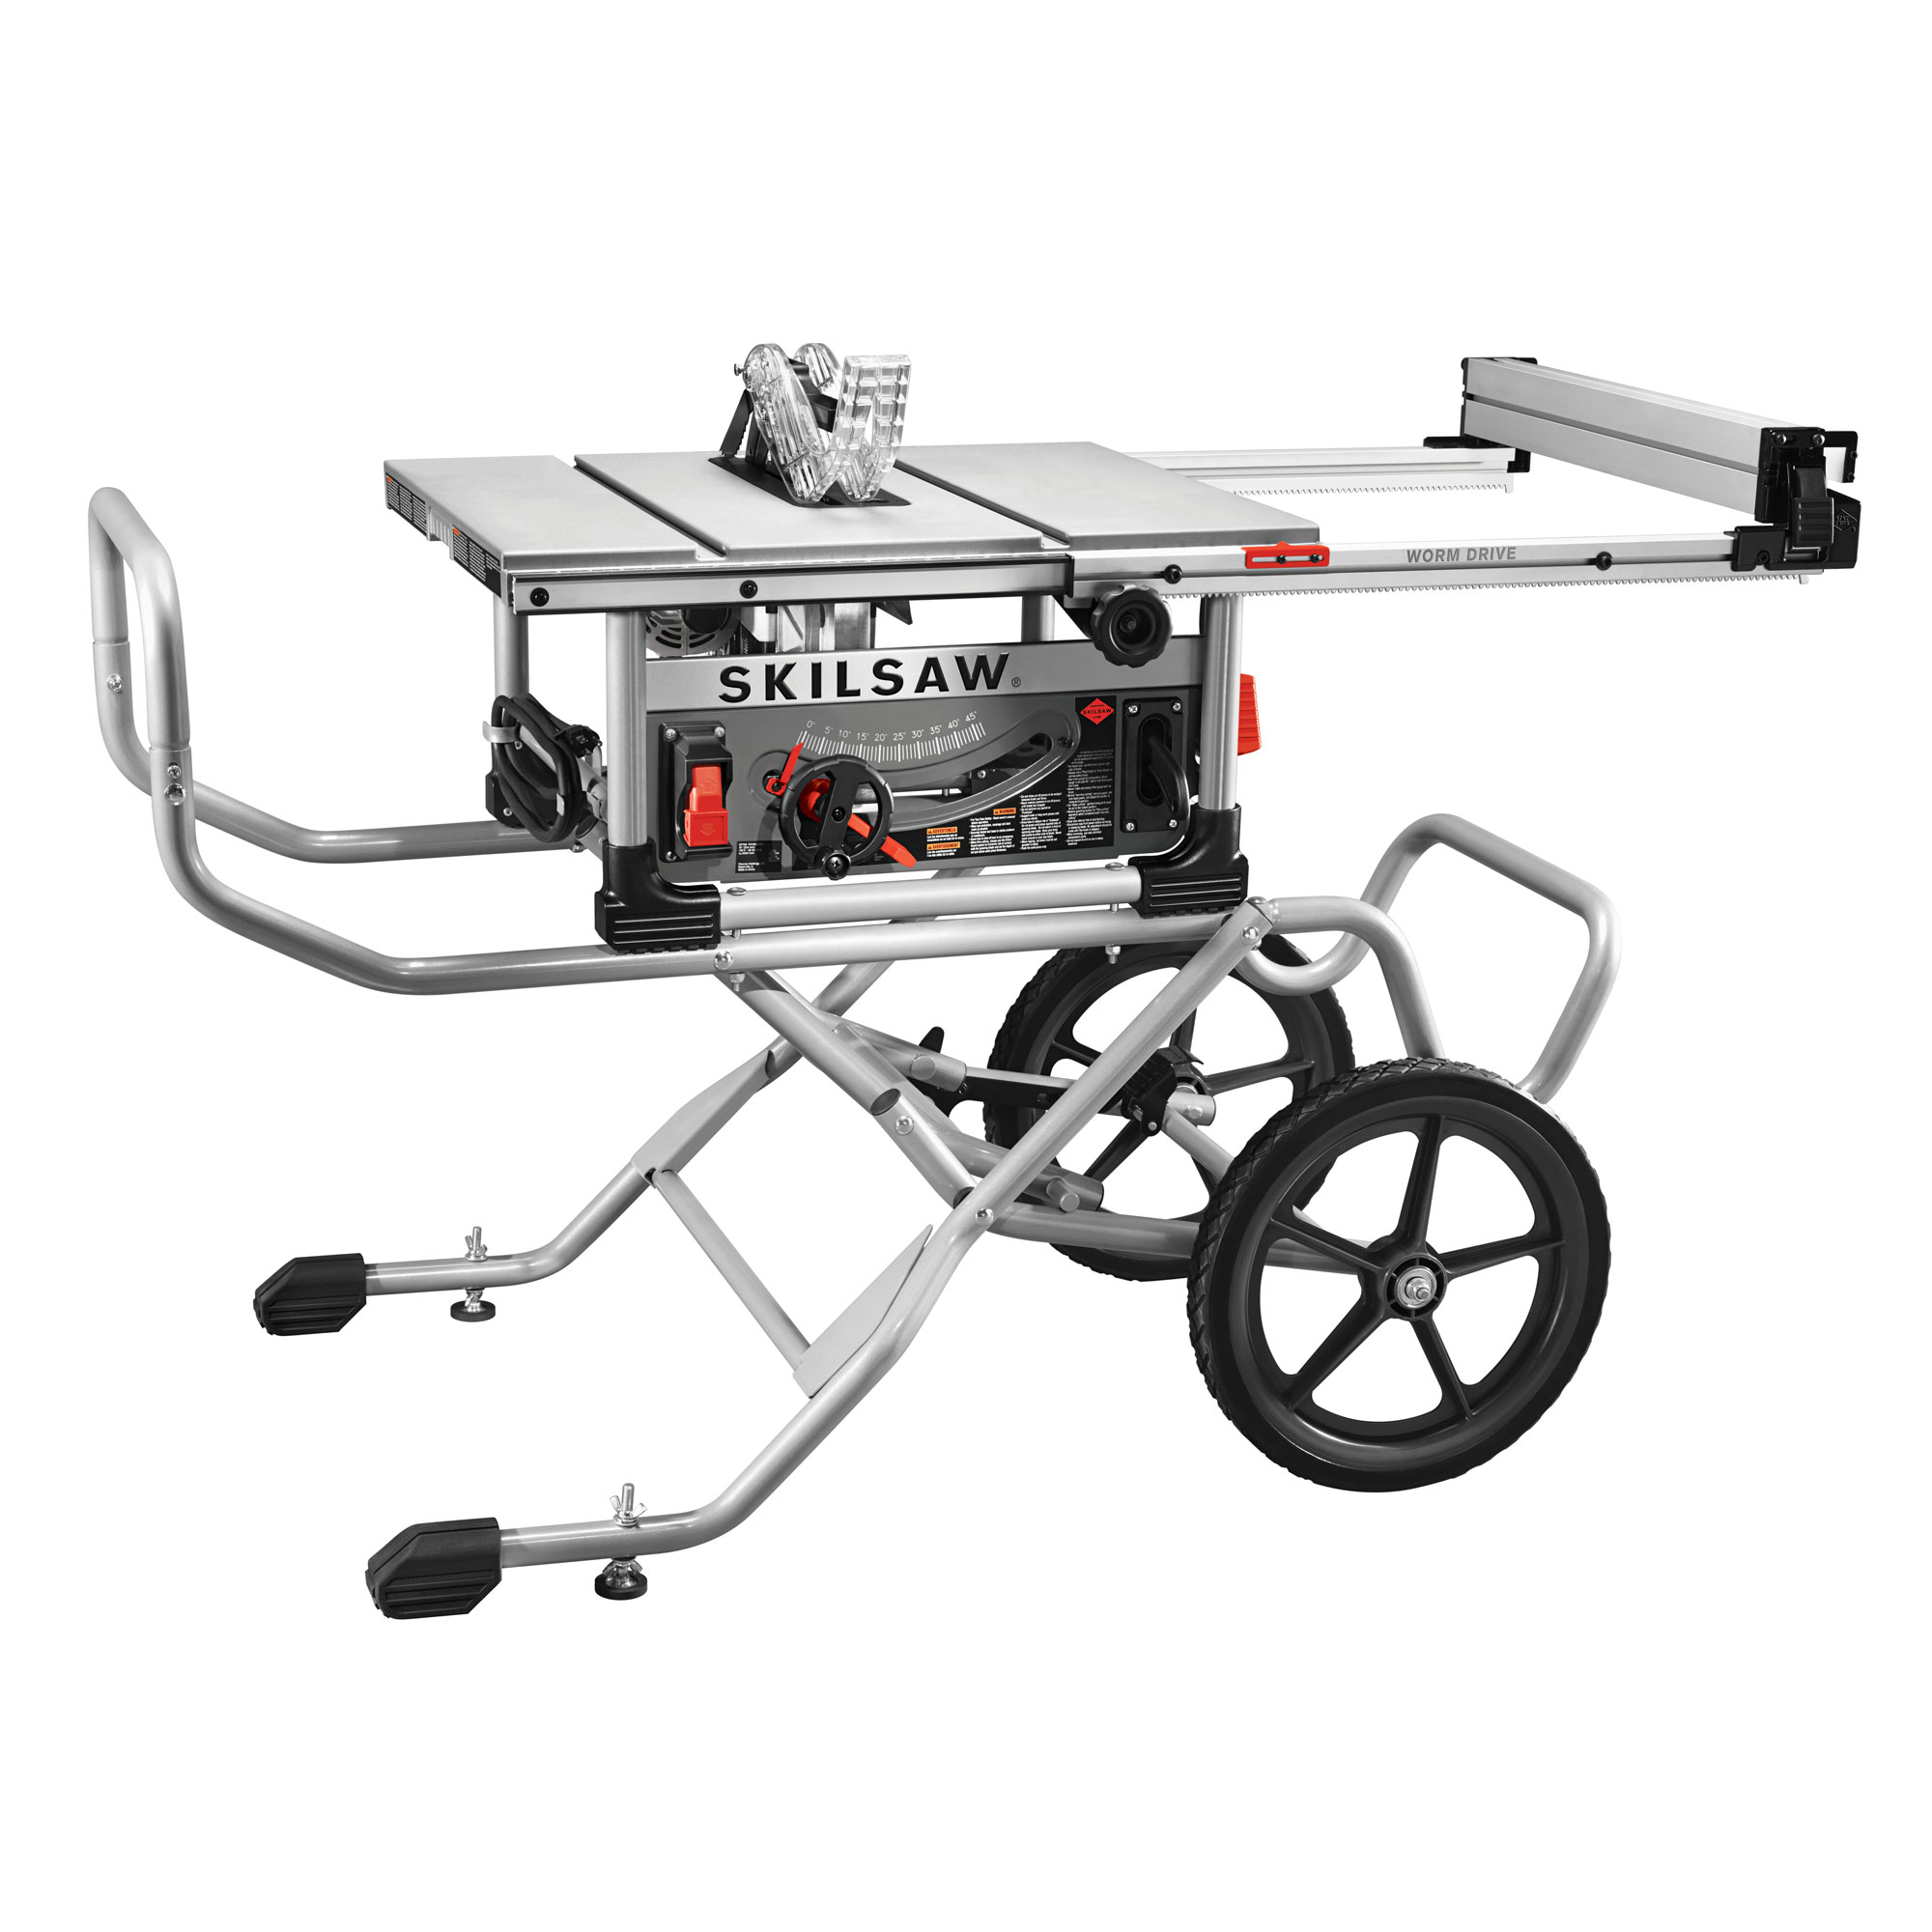 Details about skilsaw spt99 11 10 heavy duty portable folding worm drive table saw with stand skilsaw spt99 11 10 heavy duty portable folding worm drive table saw with stand greentooth Images